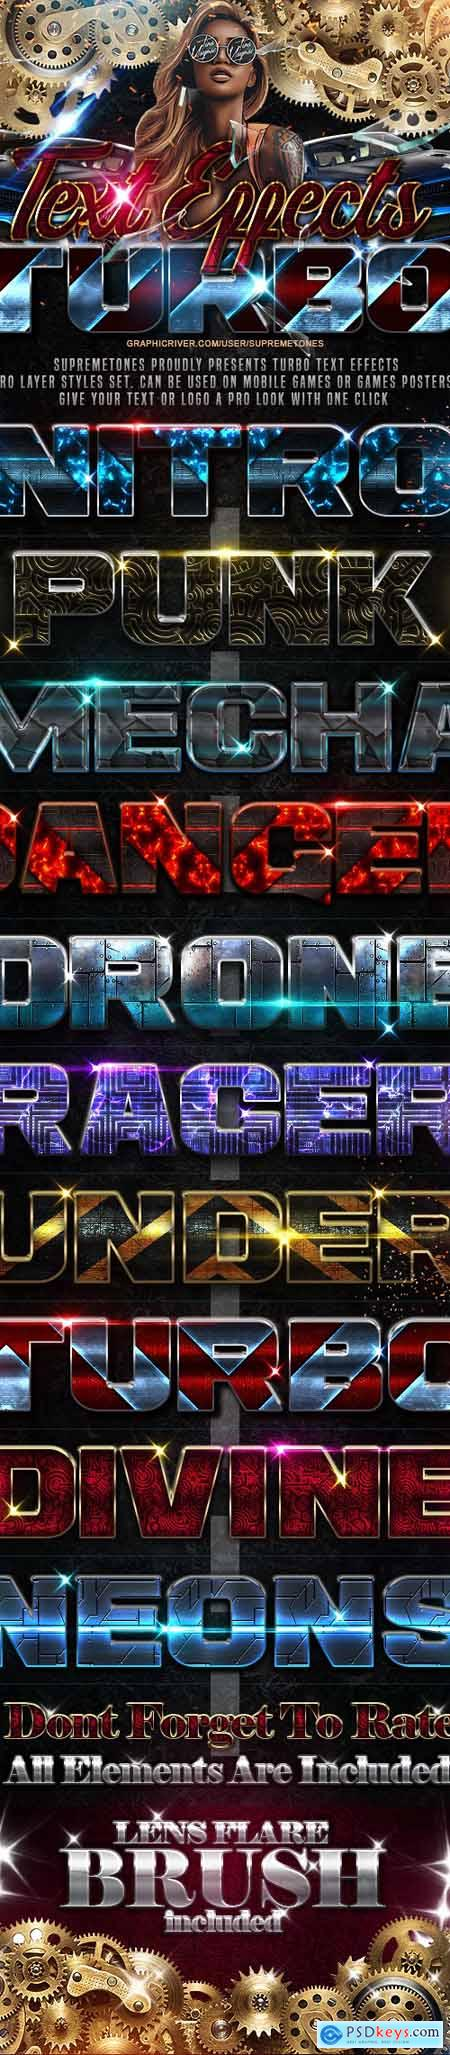 Turbo Photoshop Text Effects 24690464